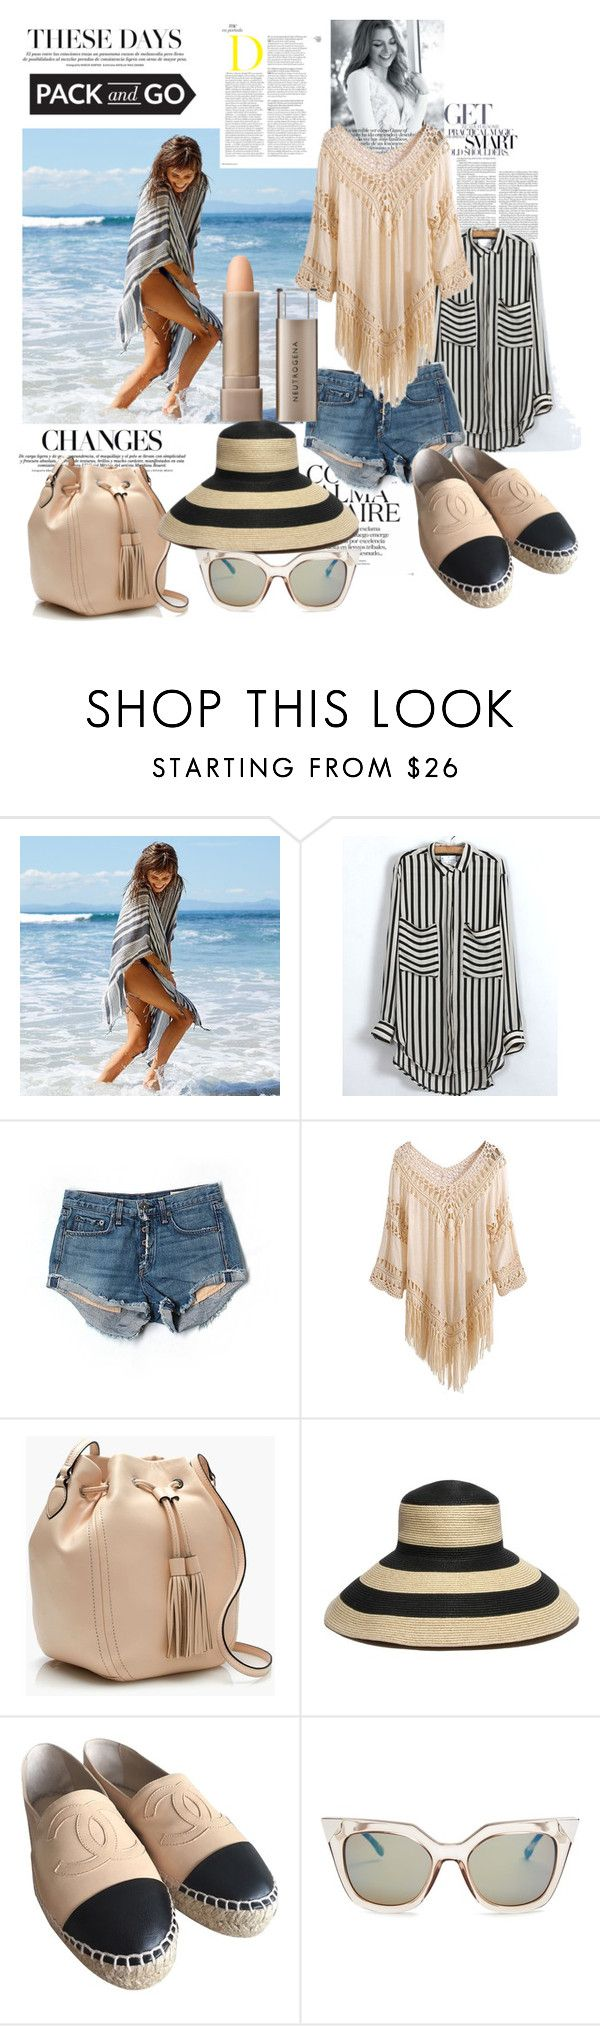 """Pack & Go ~ Mexico City"" by yvettemmh ❤ liked on Polyvore featuring Aerie, rag & bone/JEAN, J.Crew, Gottex, Chanel, Fendi, Neutrogena and Packandgo"